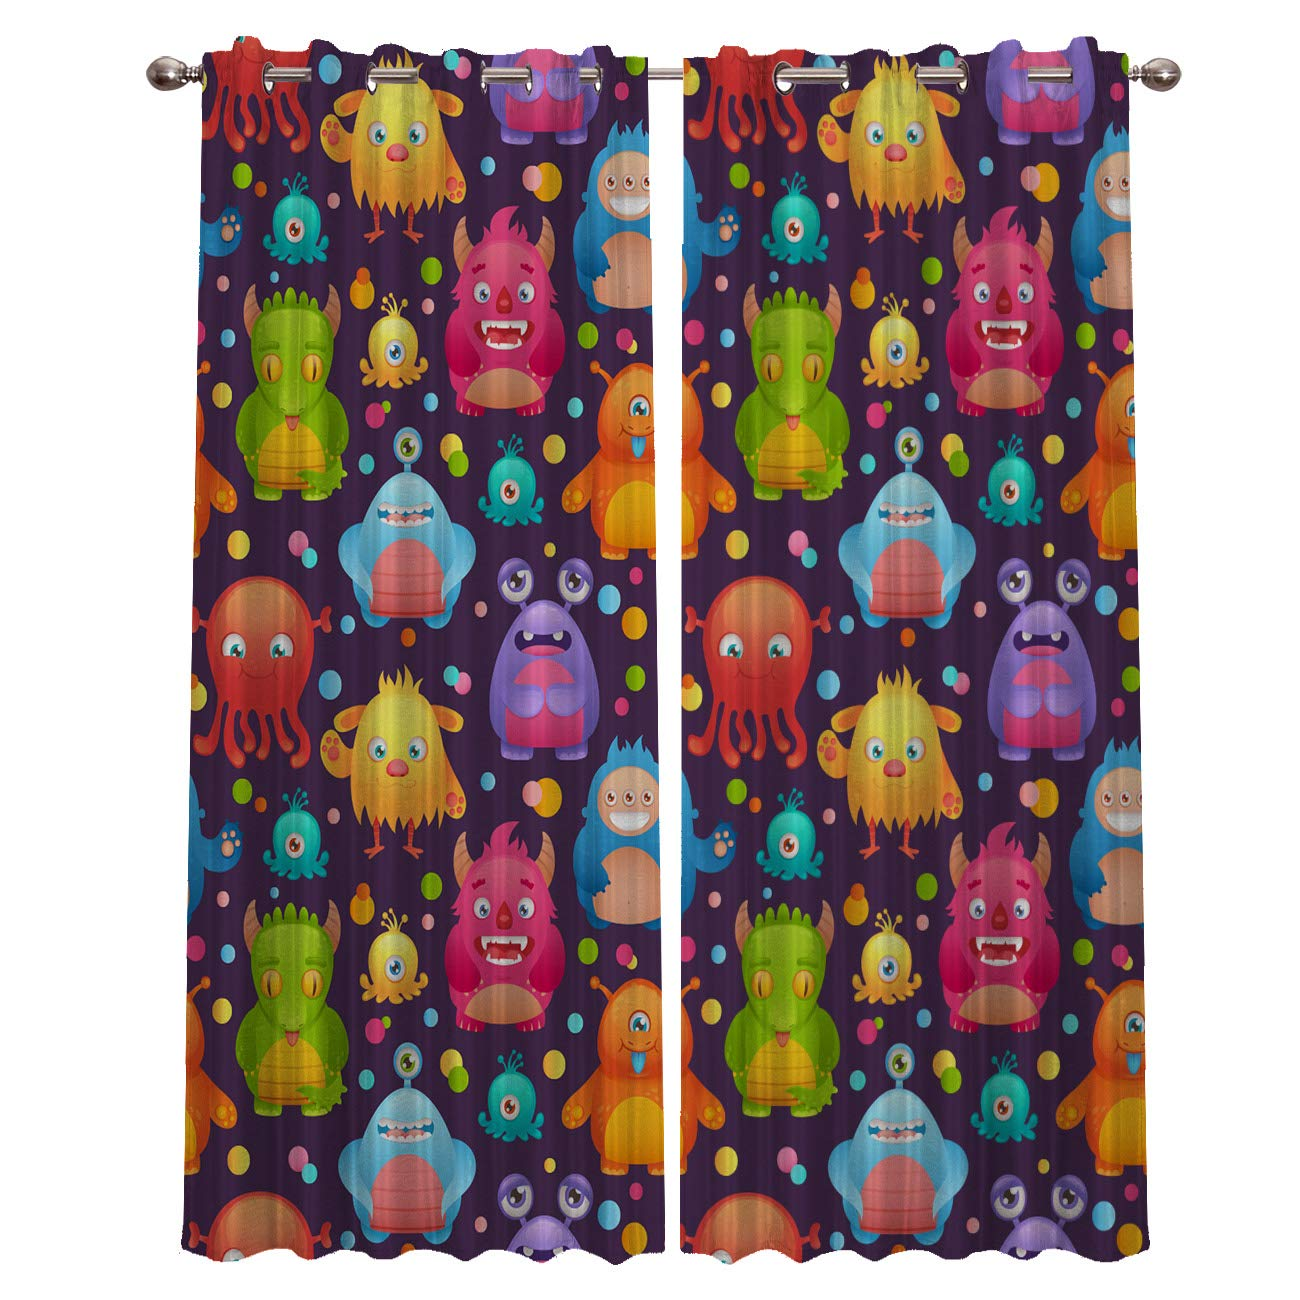 OUR WINGS Curtain Darkening Blackout Grommet Thermal Insulated Room Printed Cartoon Colorful Cute Little Monster Patterns Teens and Kids Bedroom Curtains, Set of 2 Curtain Panels 40''x63'' by OUR WINGS